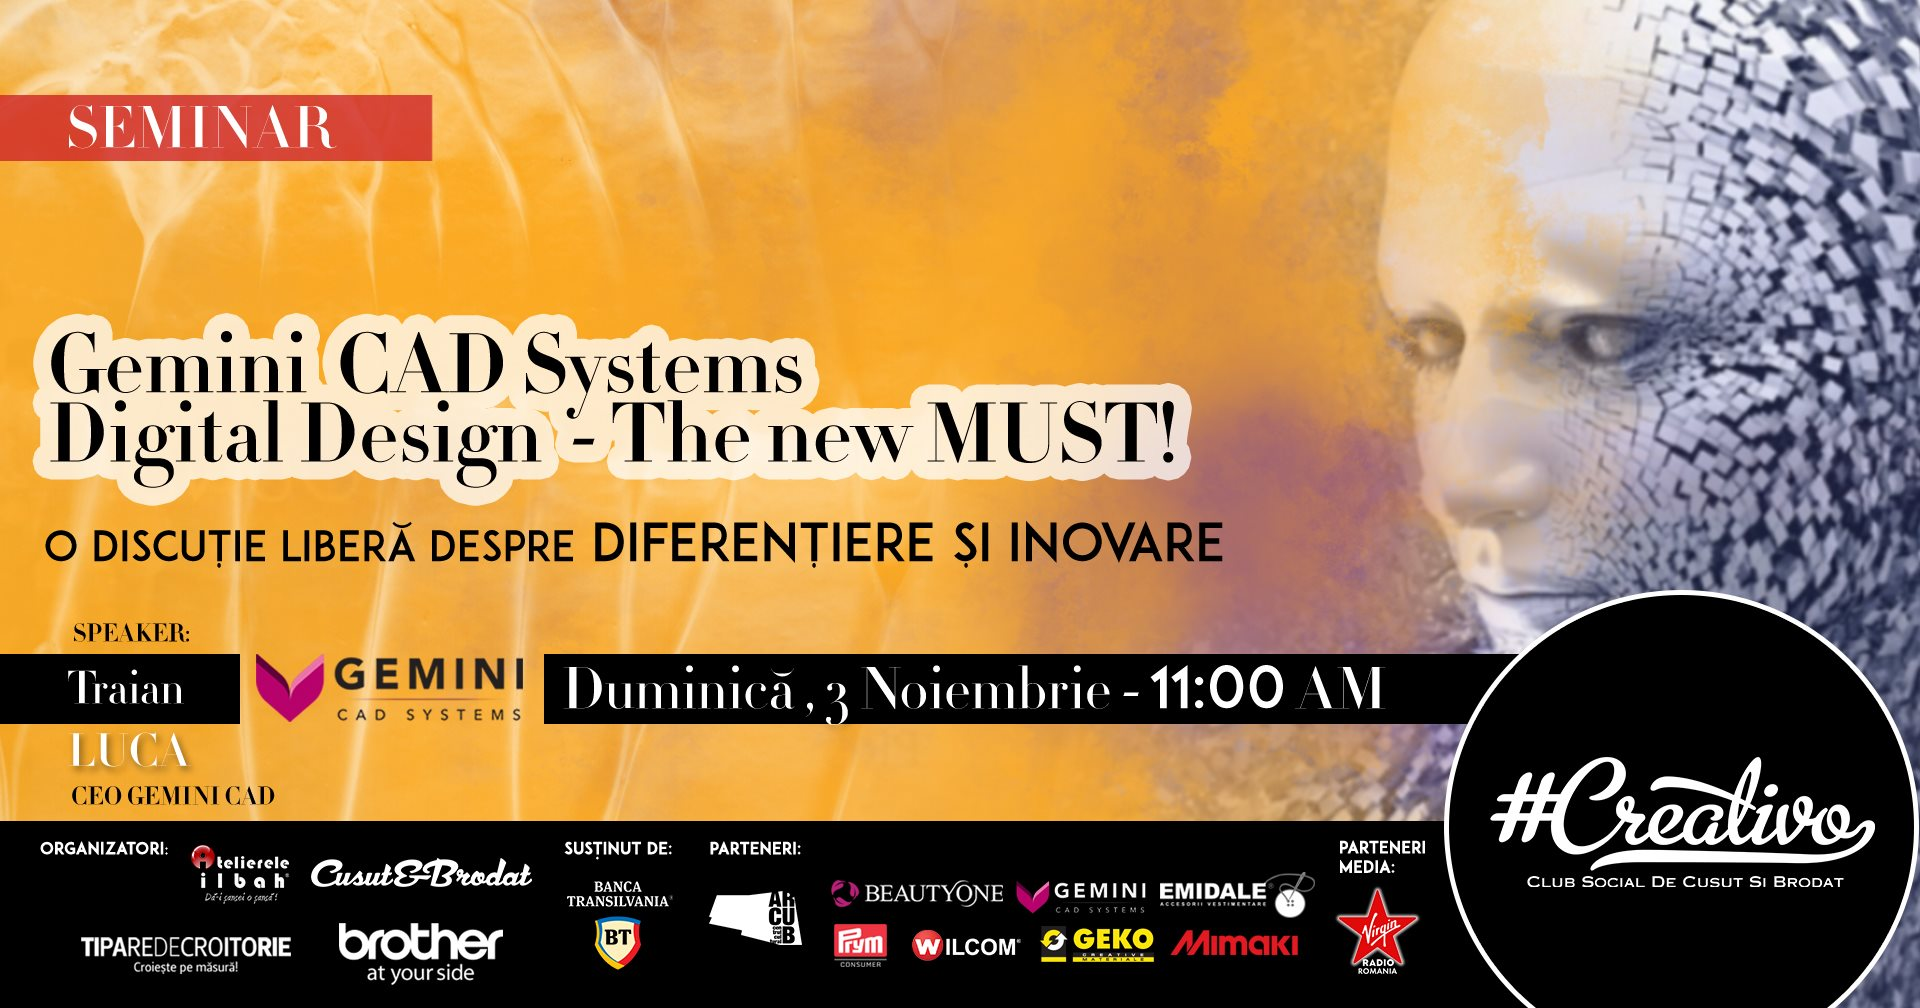 Gemini CAD Systems-Digital Design – The new MUST